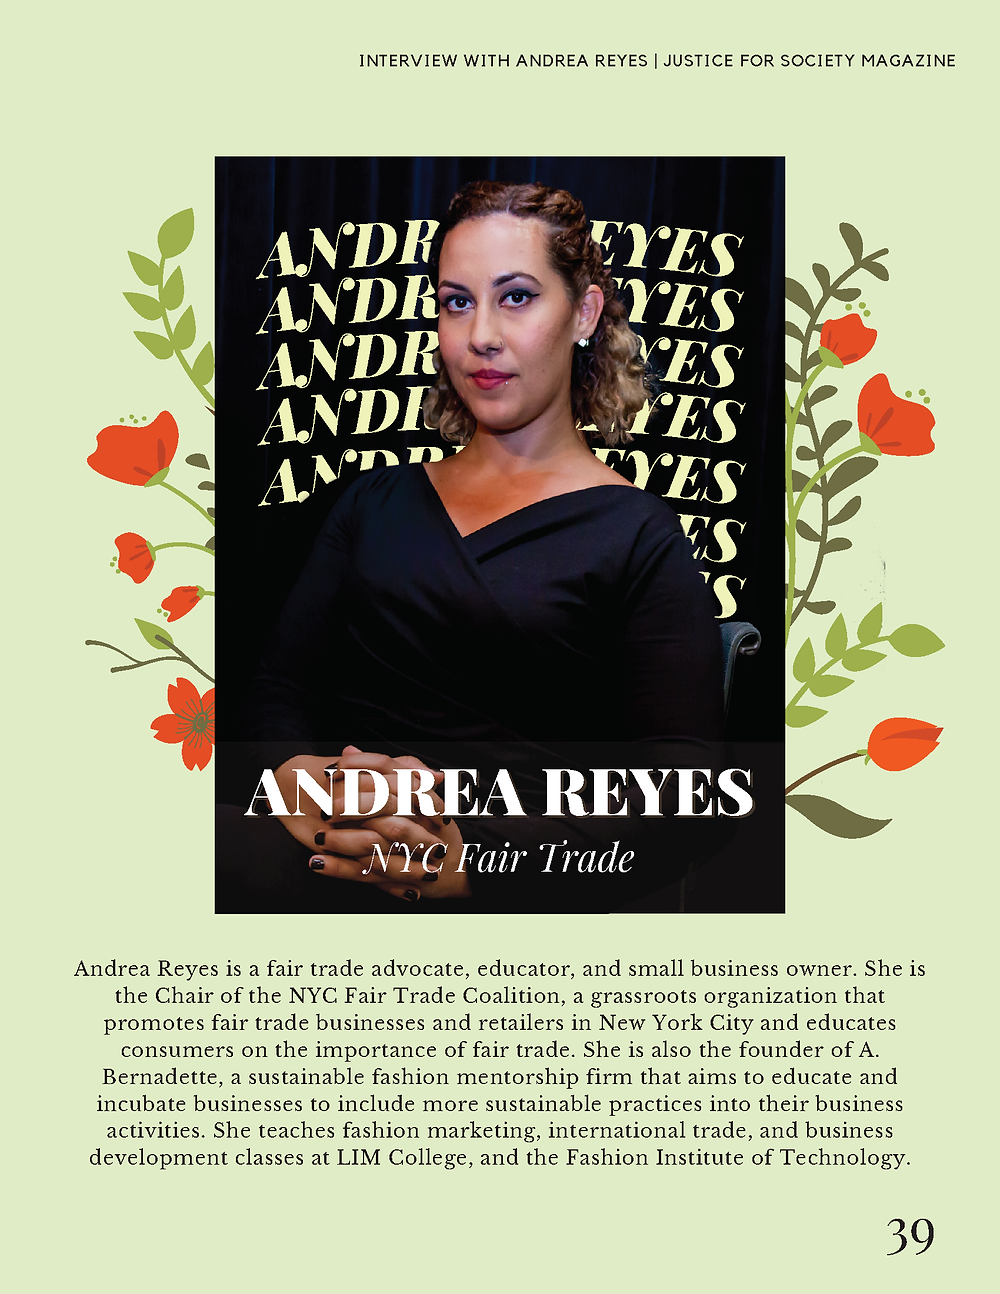 Andrea B. Reyes Sustainable Fashion Mentor A. Bernadette Harlem NYC